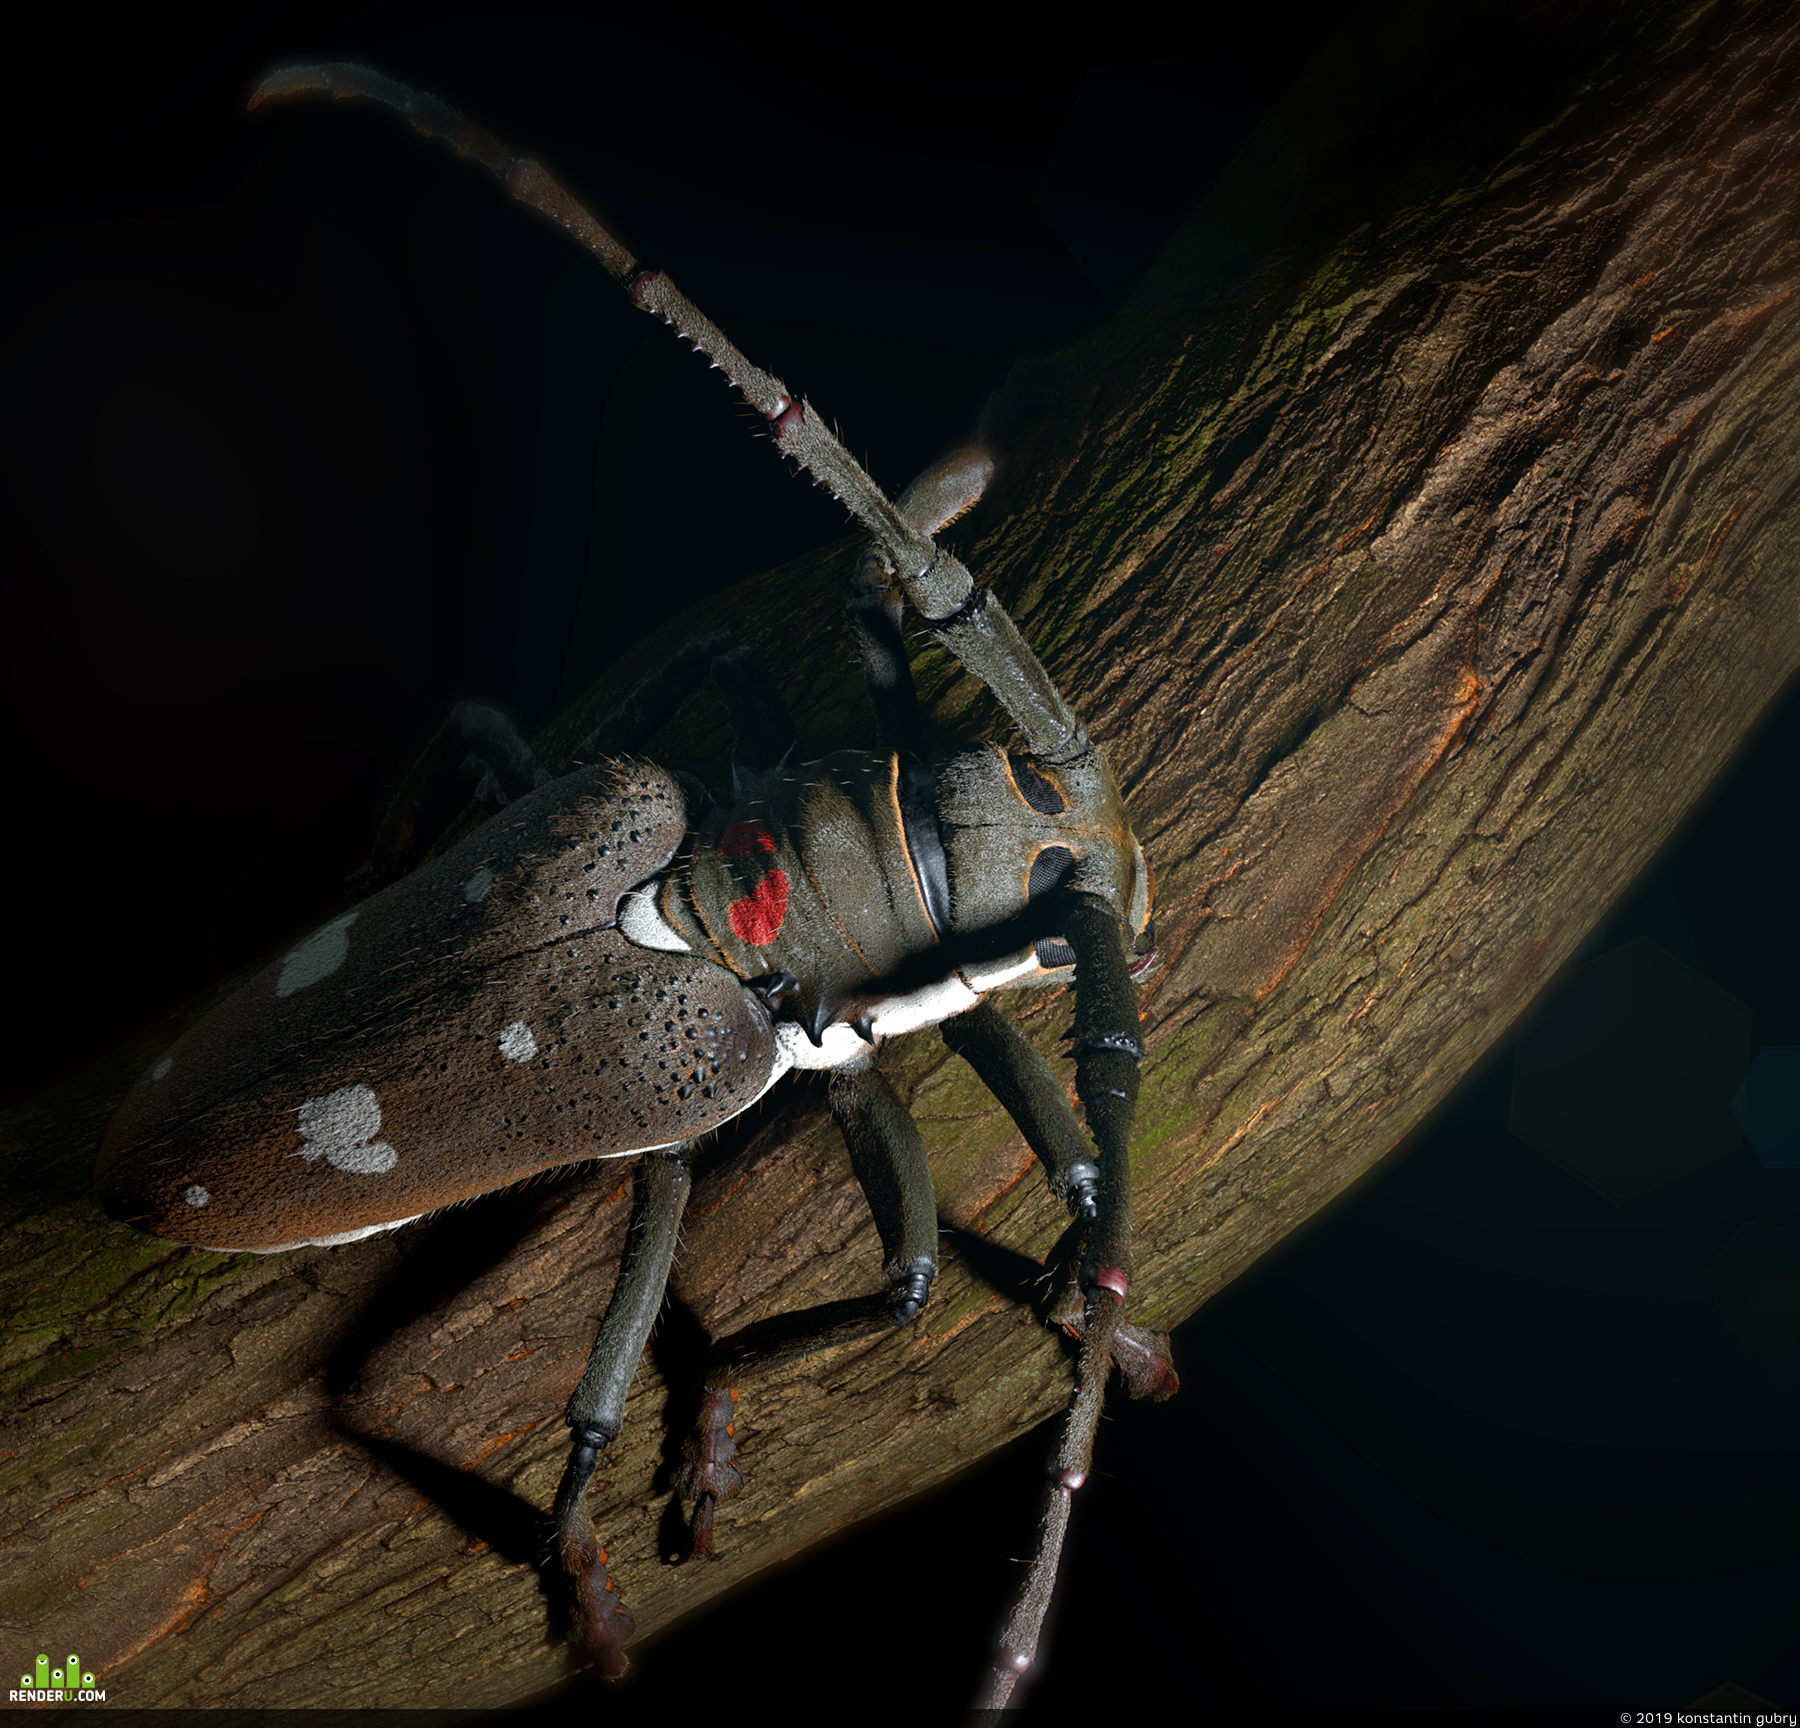 preview The Capricorn beetle